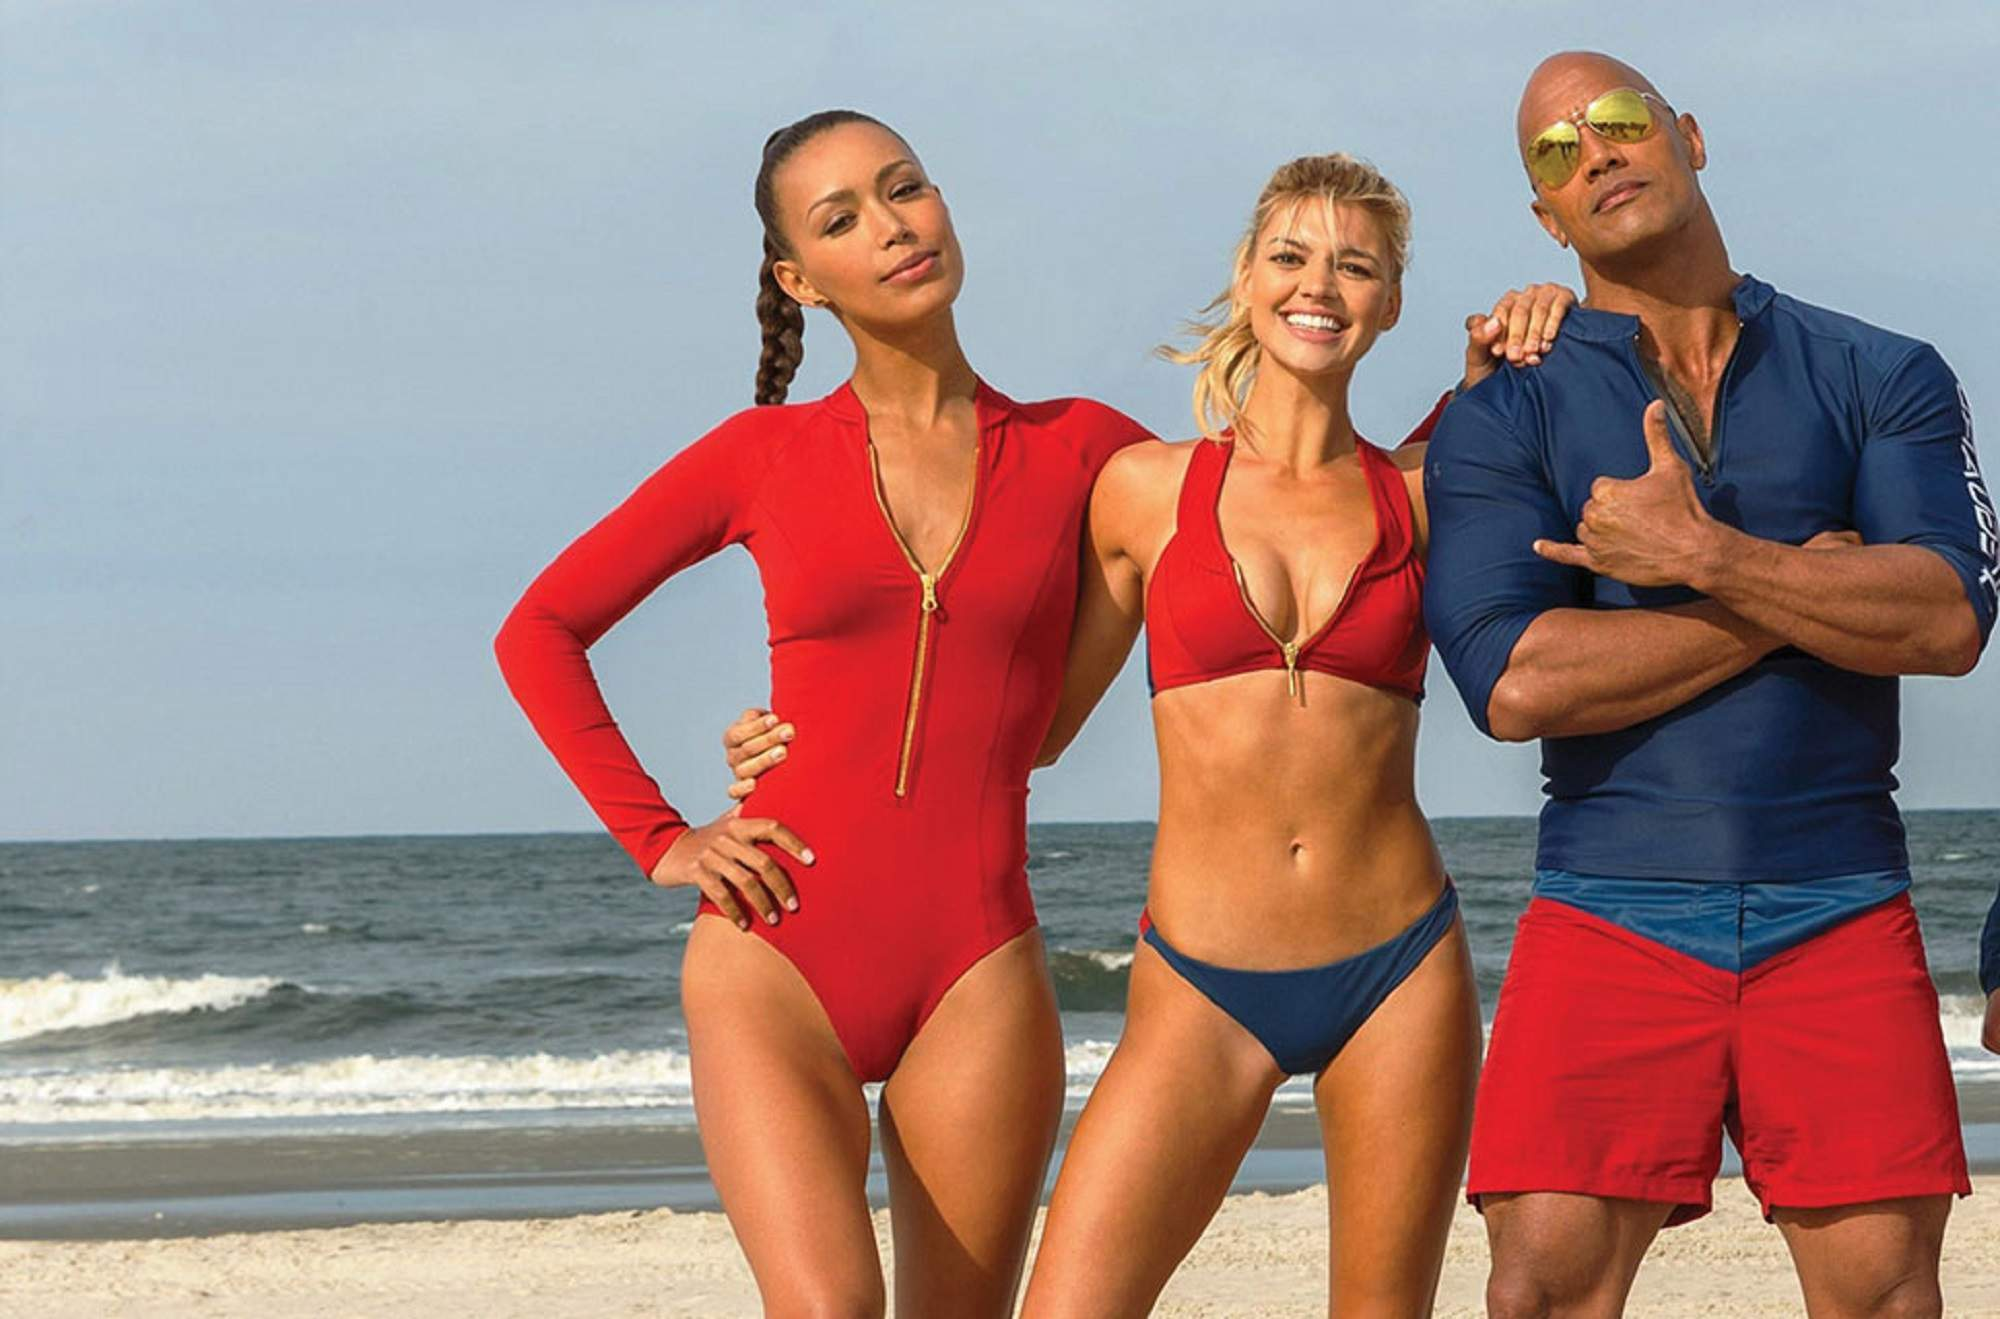 Seth Gordon has achieved the impossible - he's dumbed down Baywatch